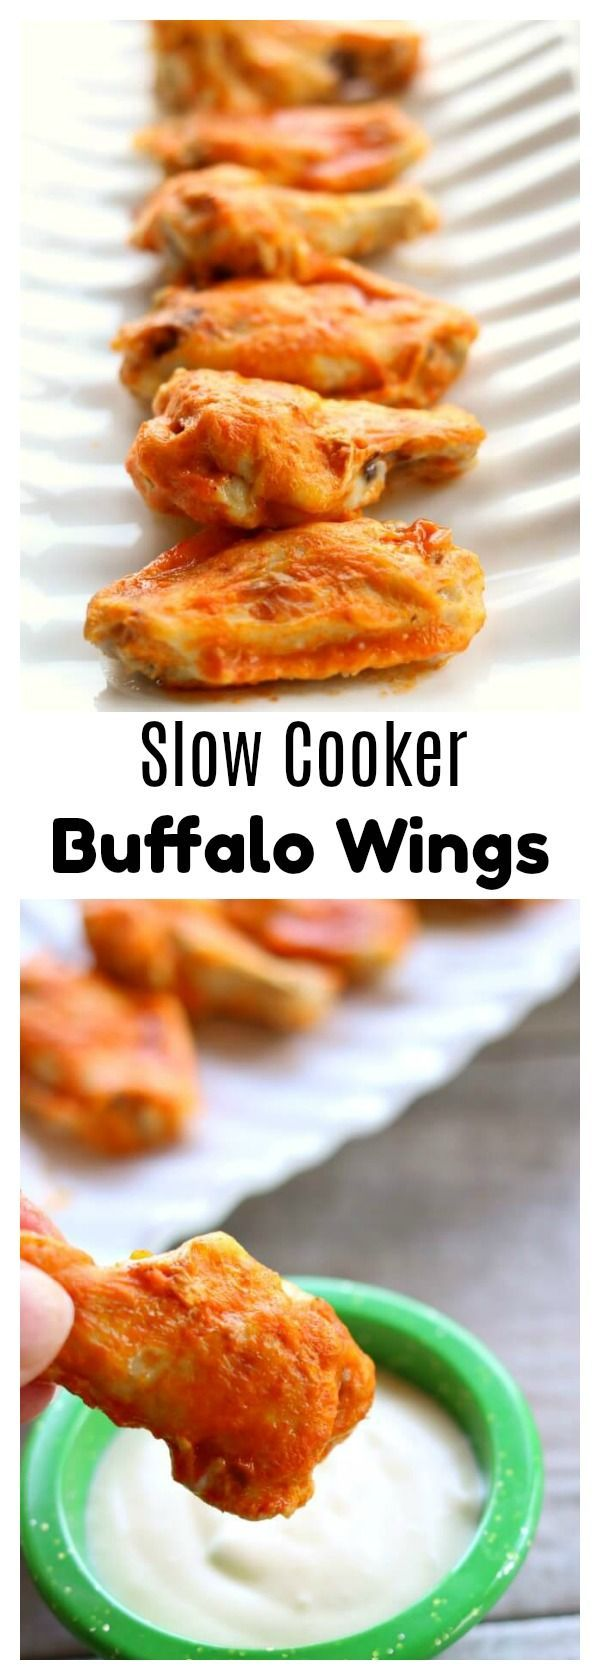 how to cook frozen chicken wings in slow cooker